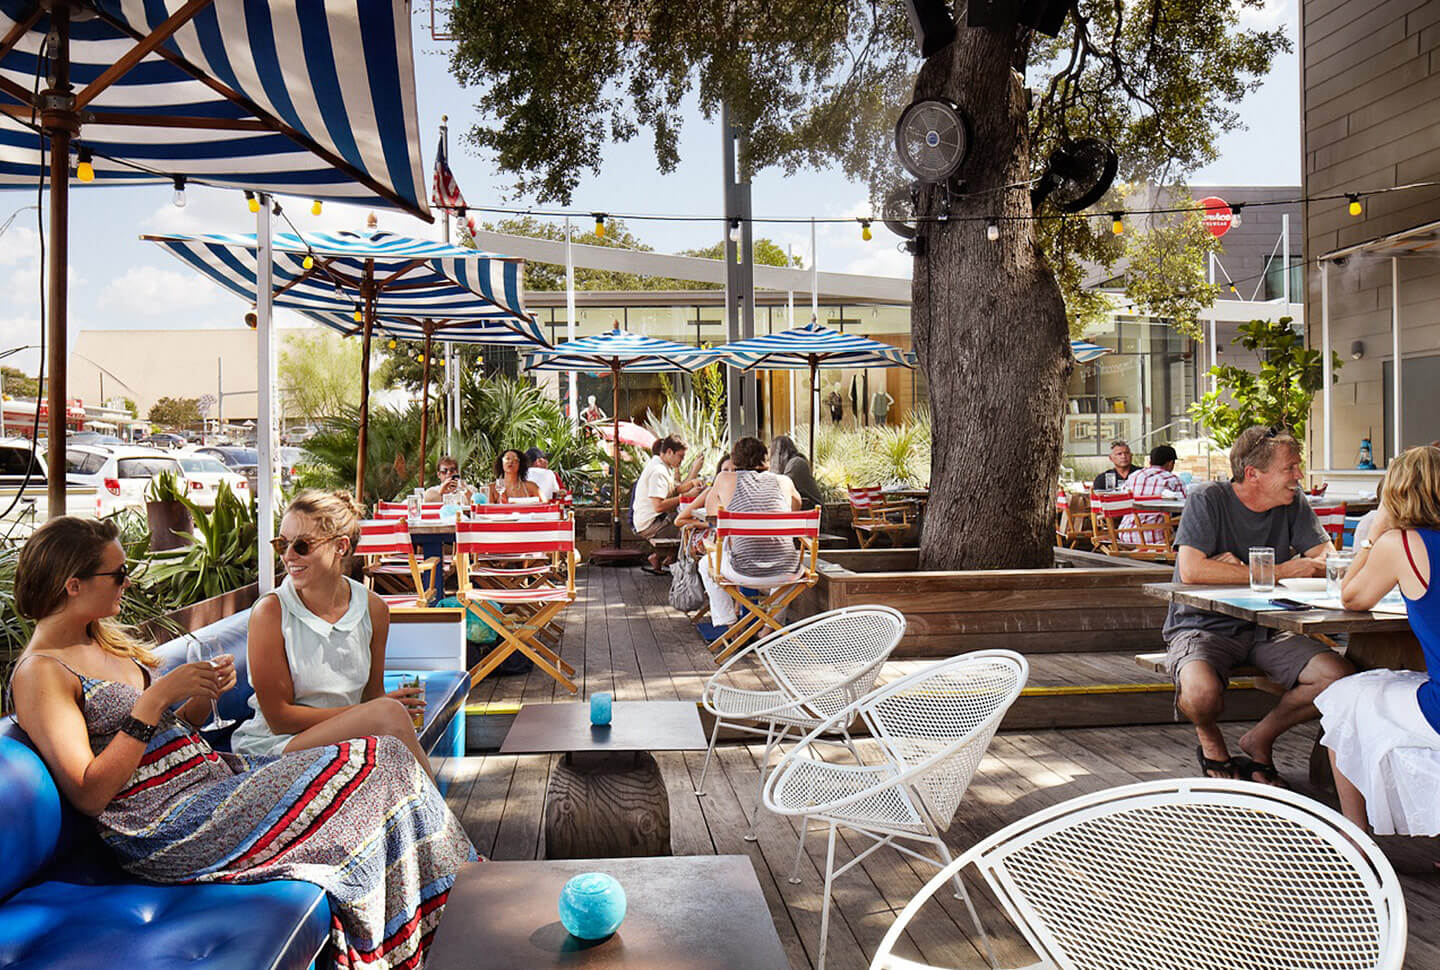 Where To Eat And Drink On South Congress